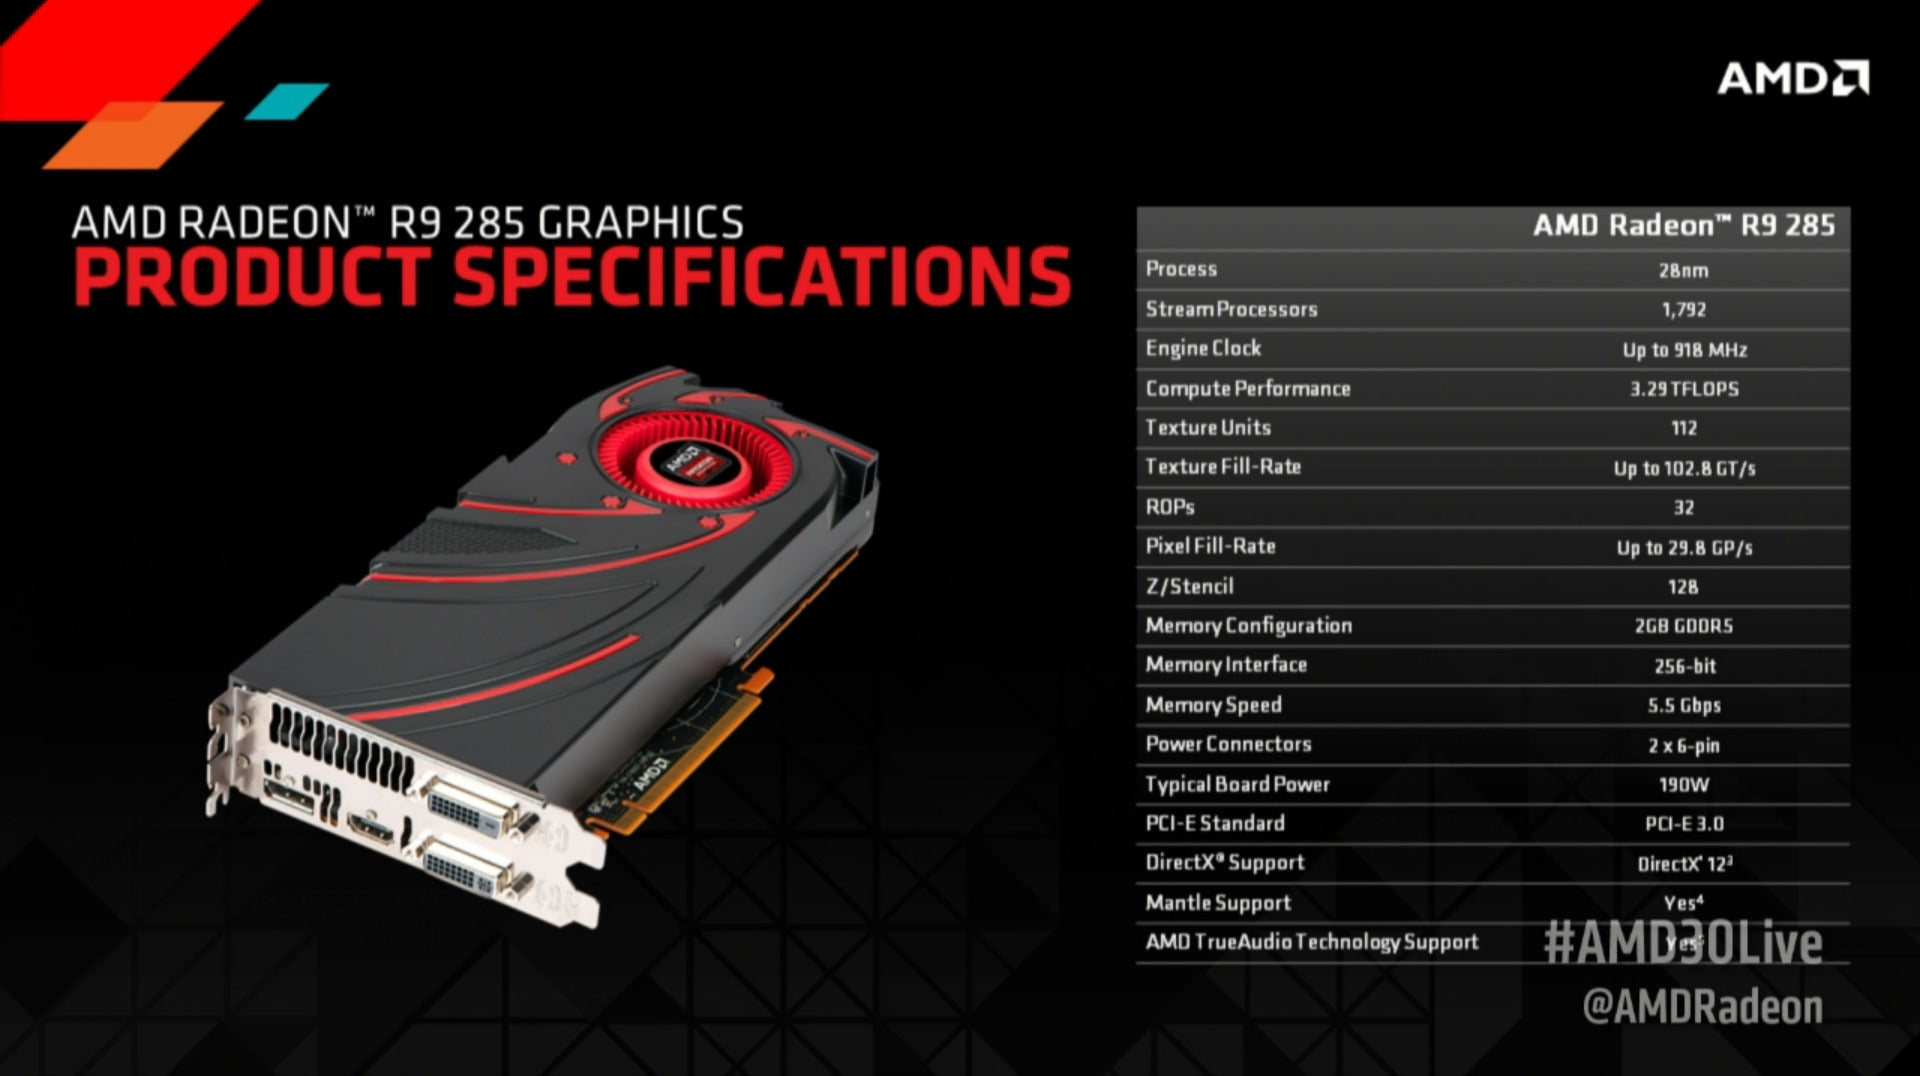 DOWNLOAD DRIVER: AMD RADEON R9 285